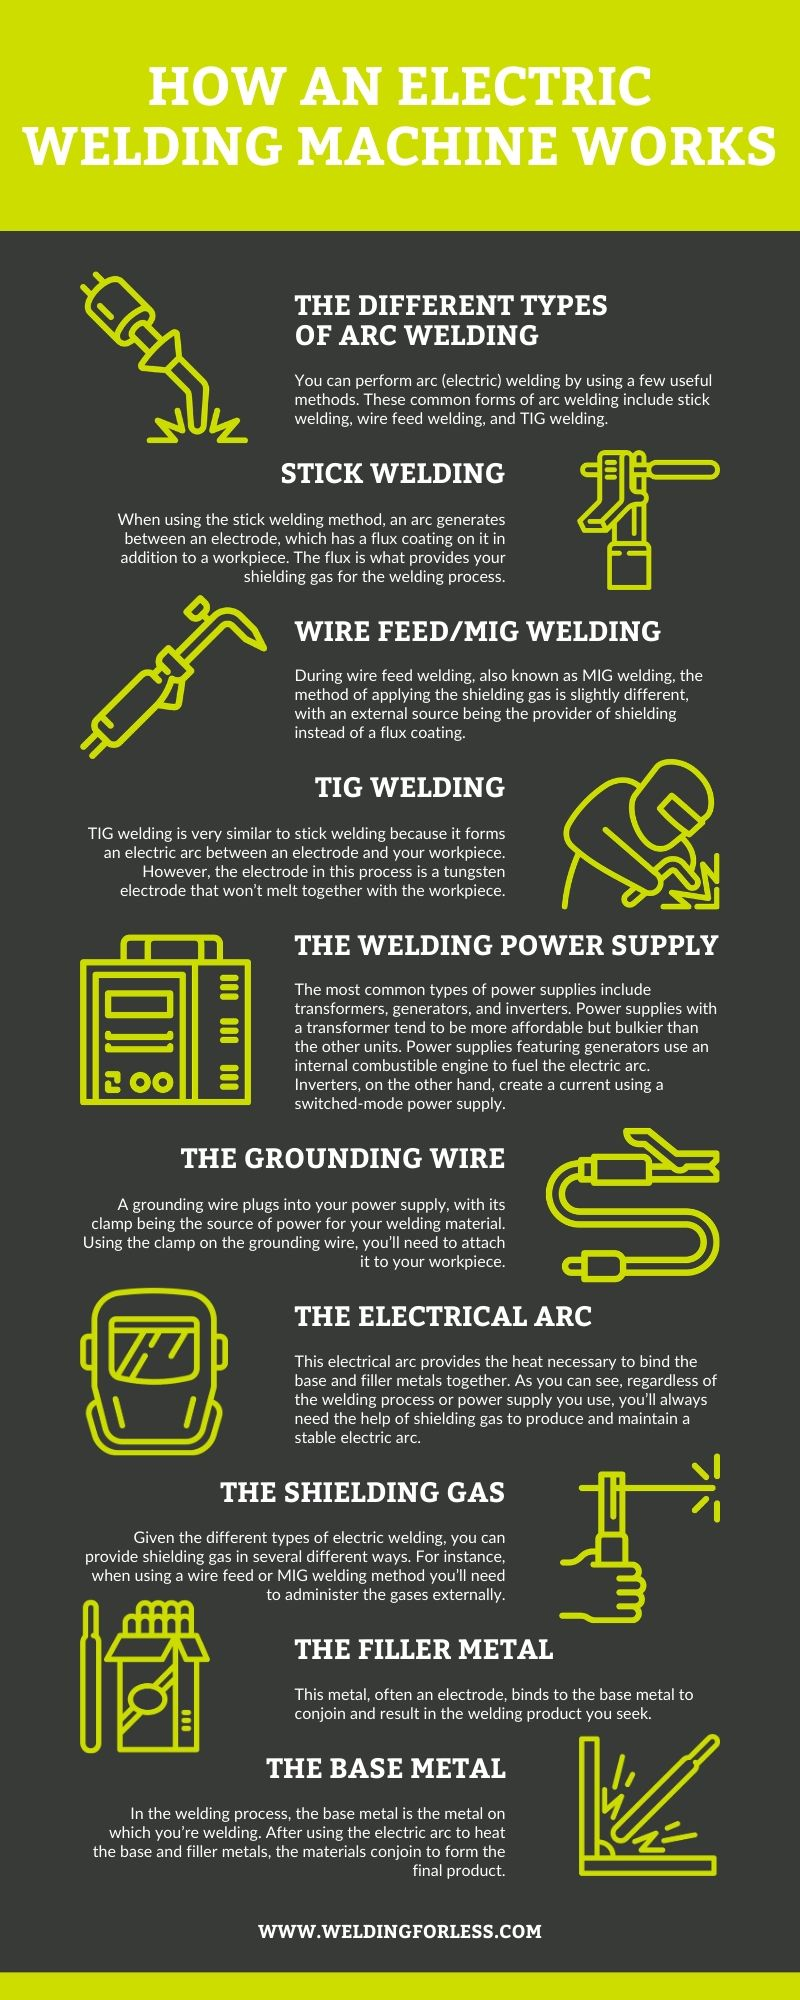 How a Welding Machine Works